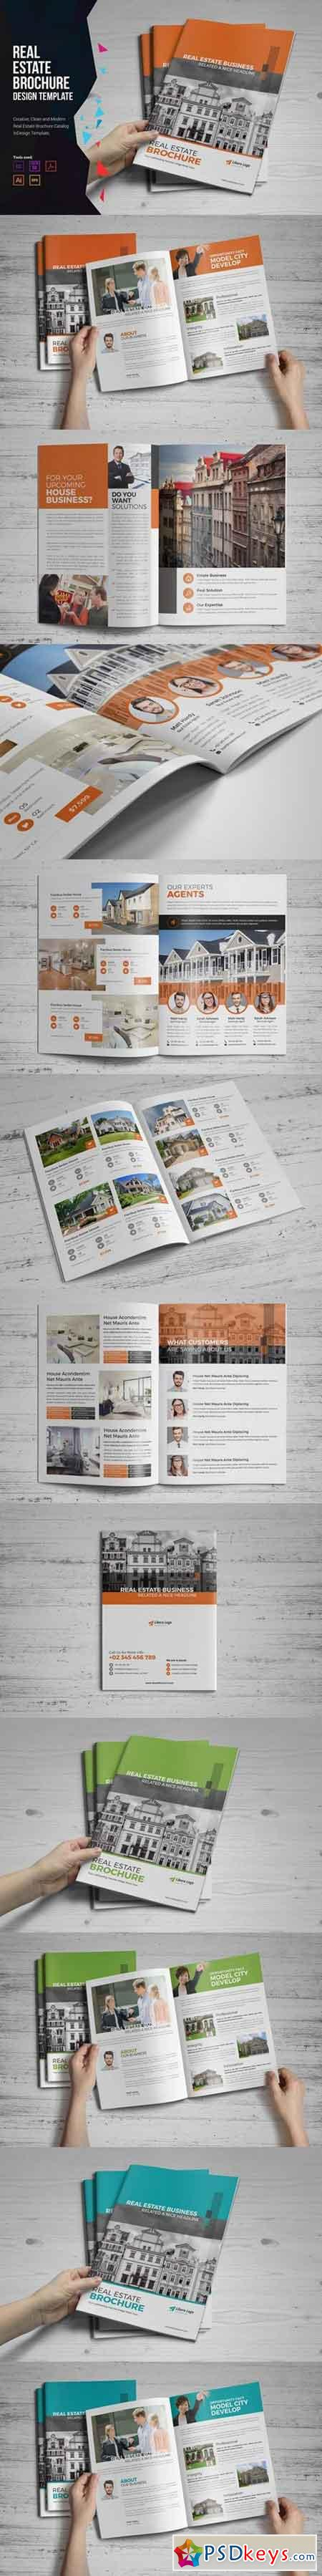 Real Estate Brochure v2 933385